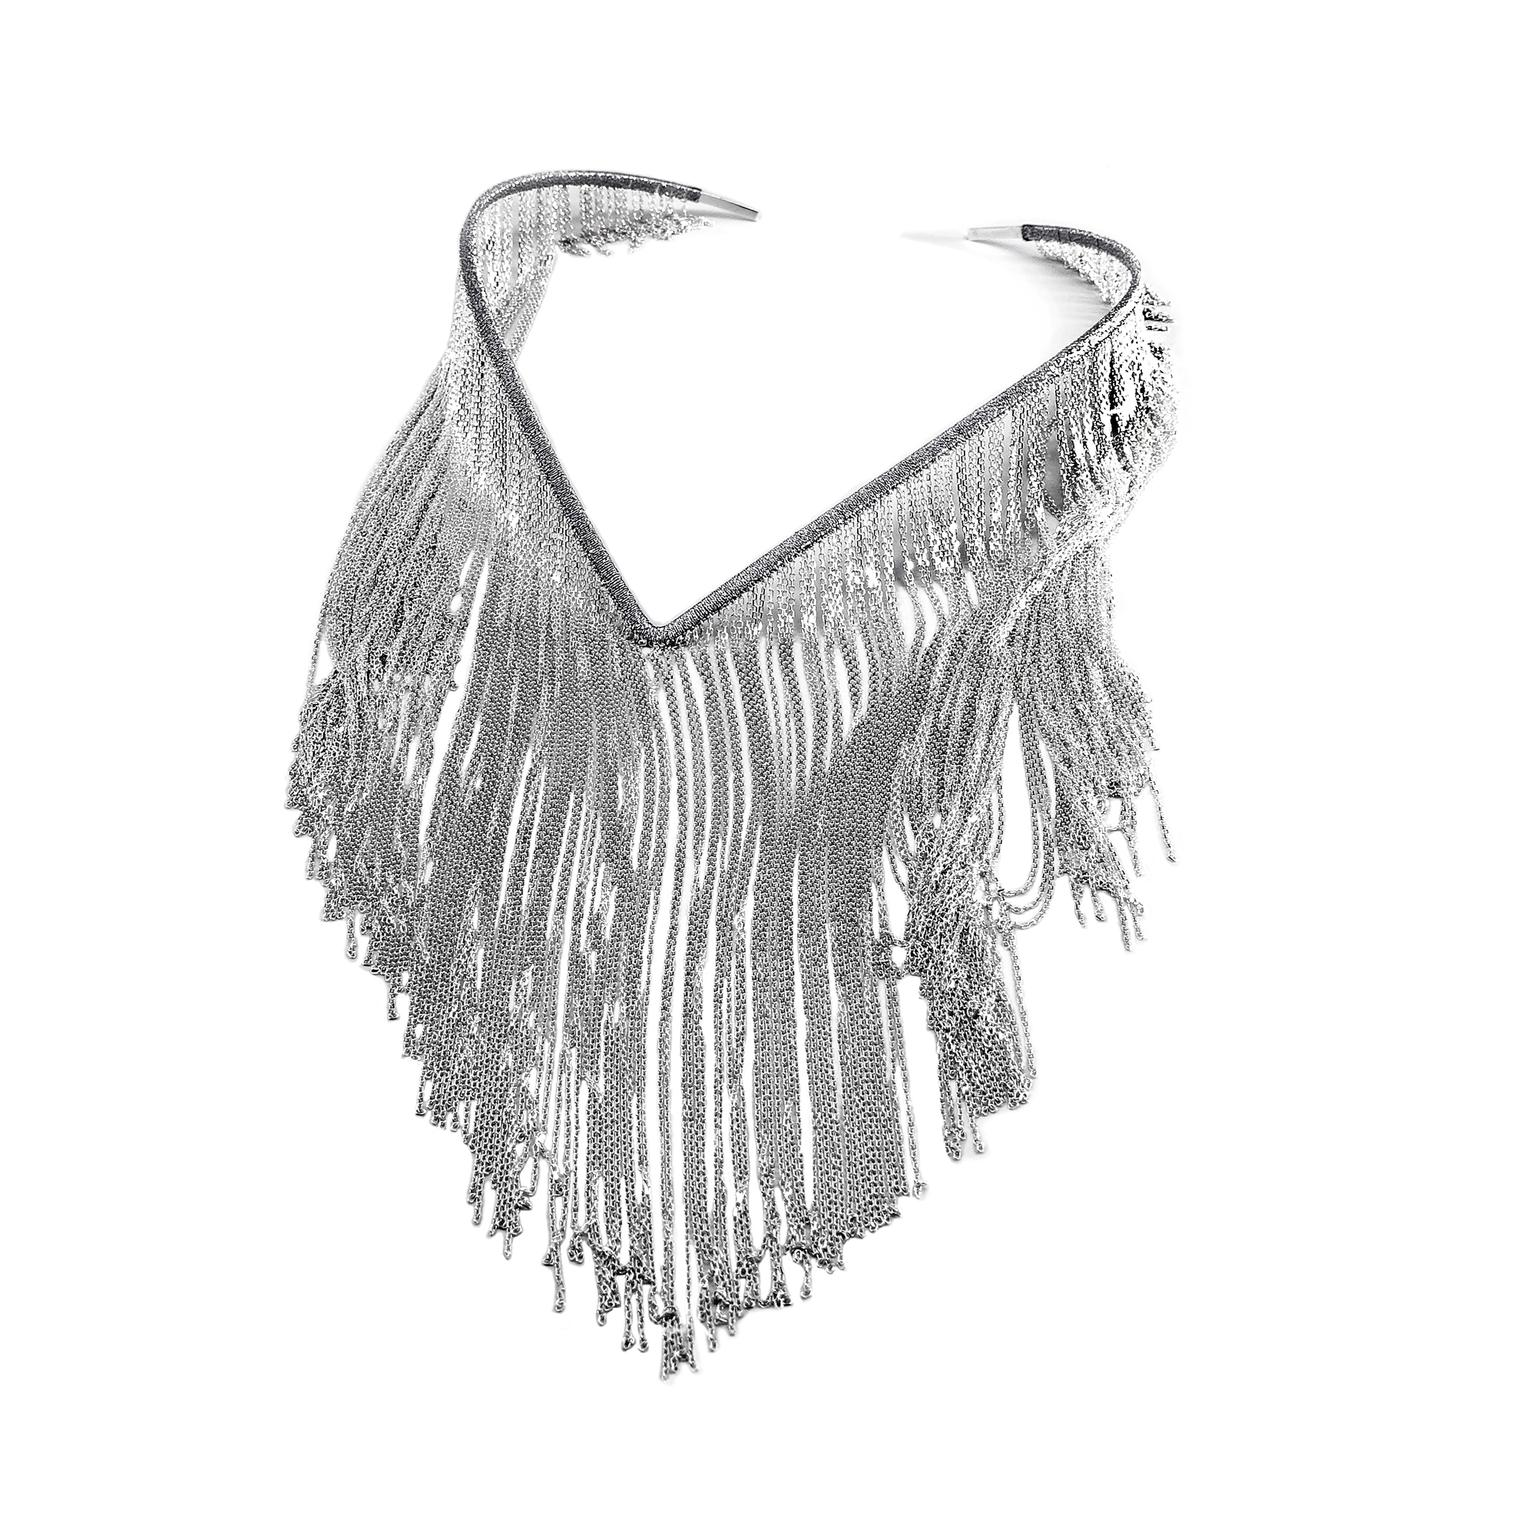 Dance party required: fringe jewelry